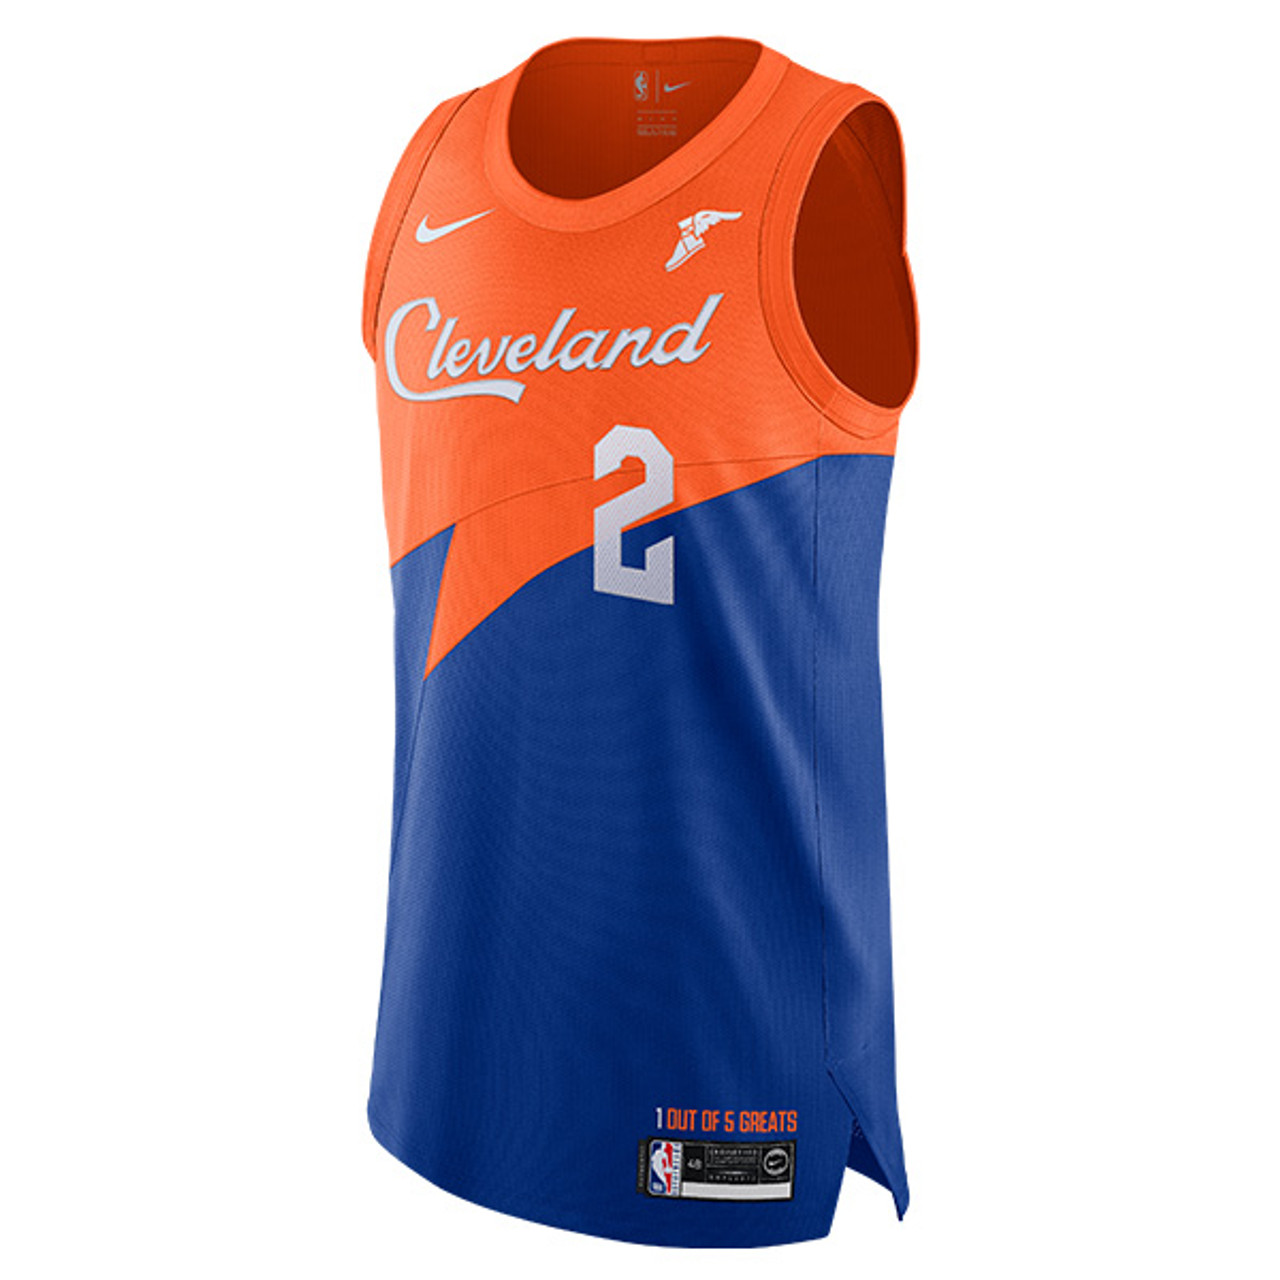 4df581ea6 Royal Blue   Orange Collin Sexton Cleveland City Edition Authentic Jersey  by Nike